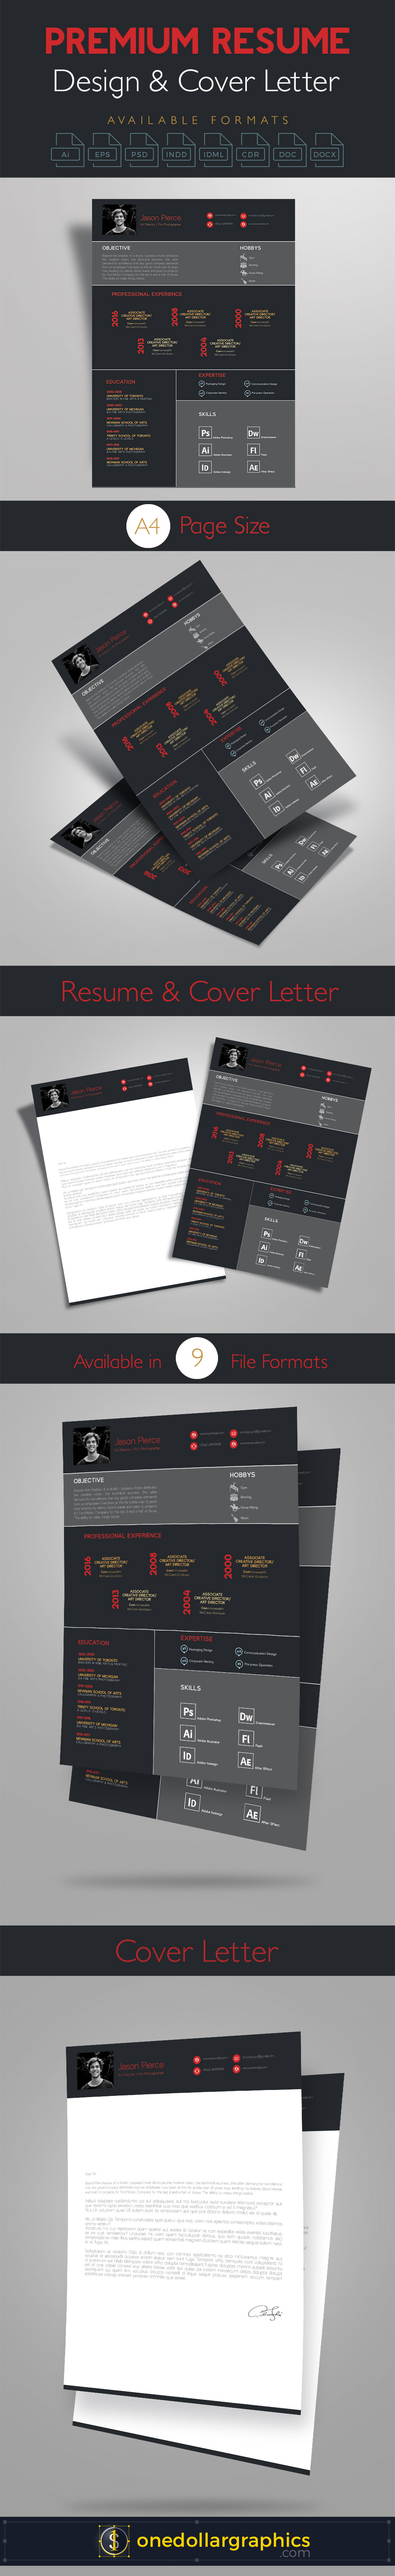 premium resume cv design cover letter template